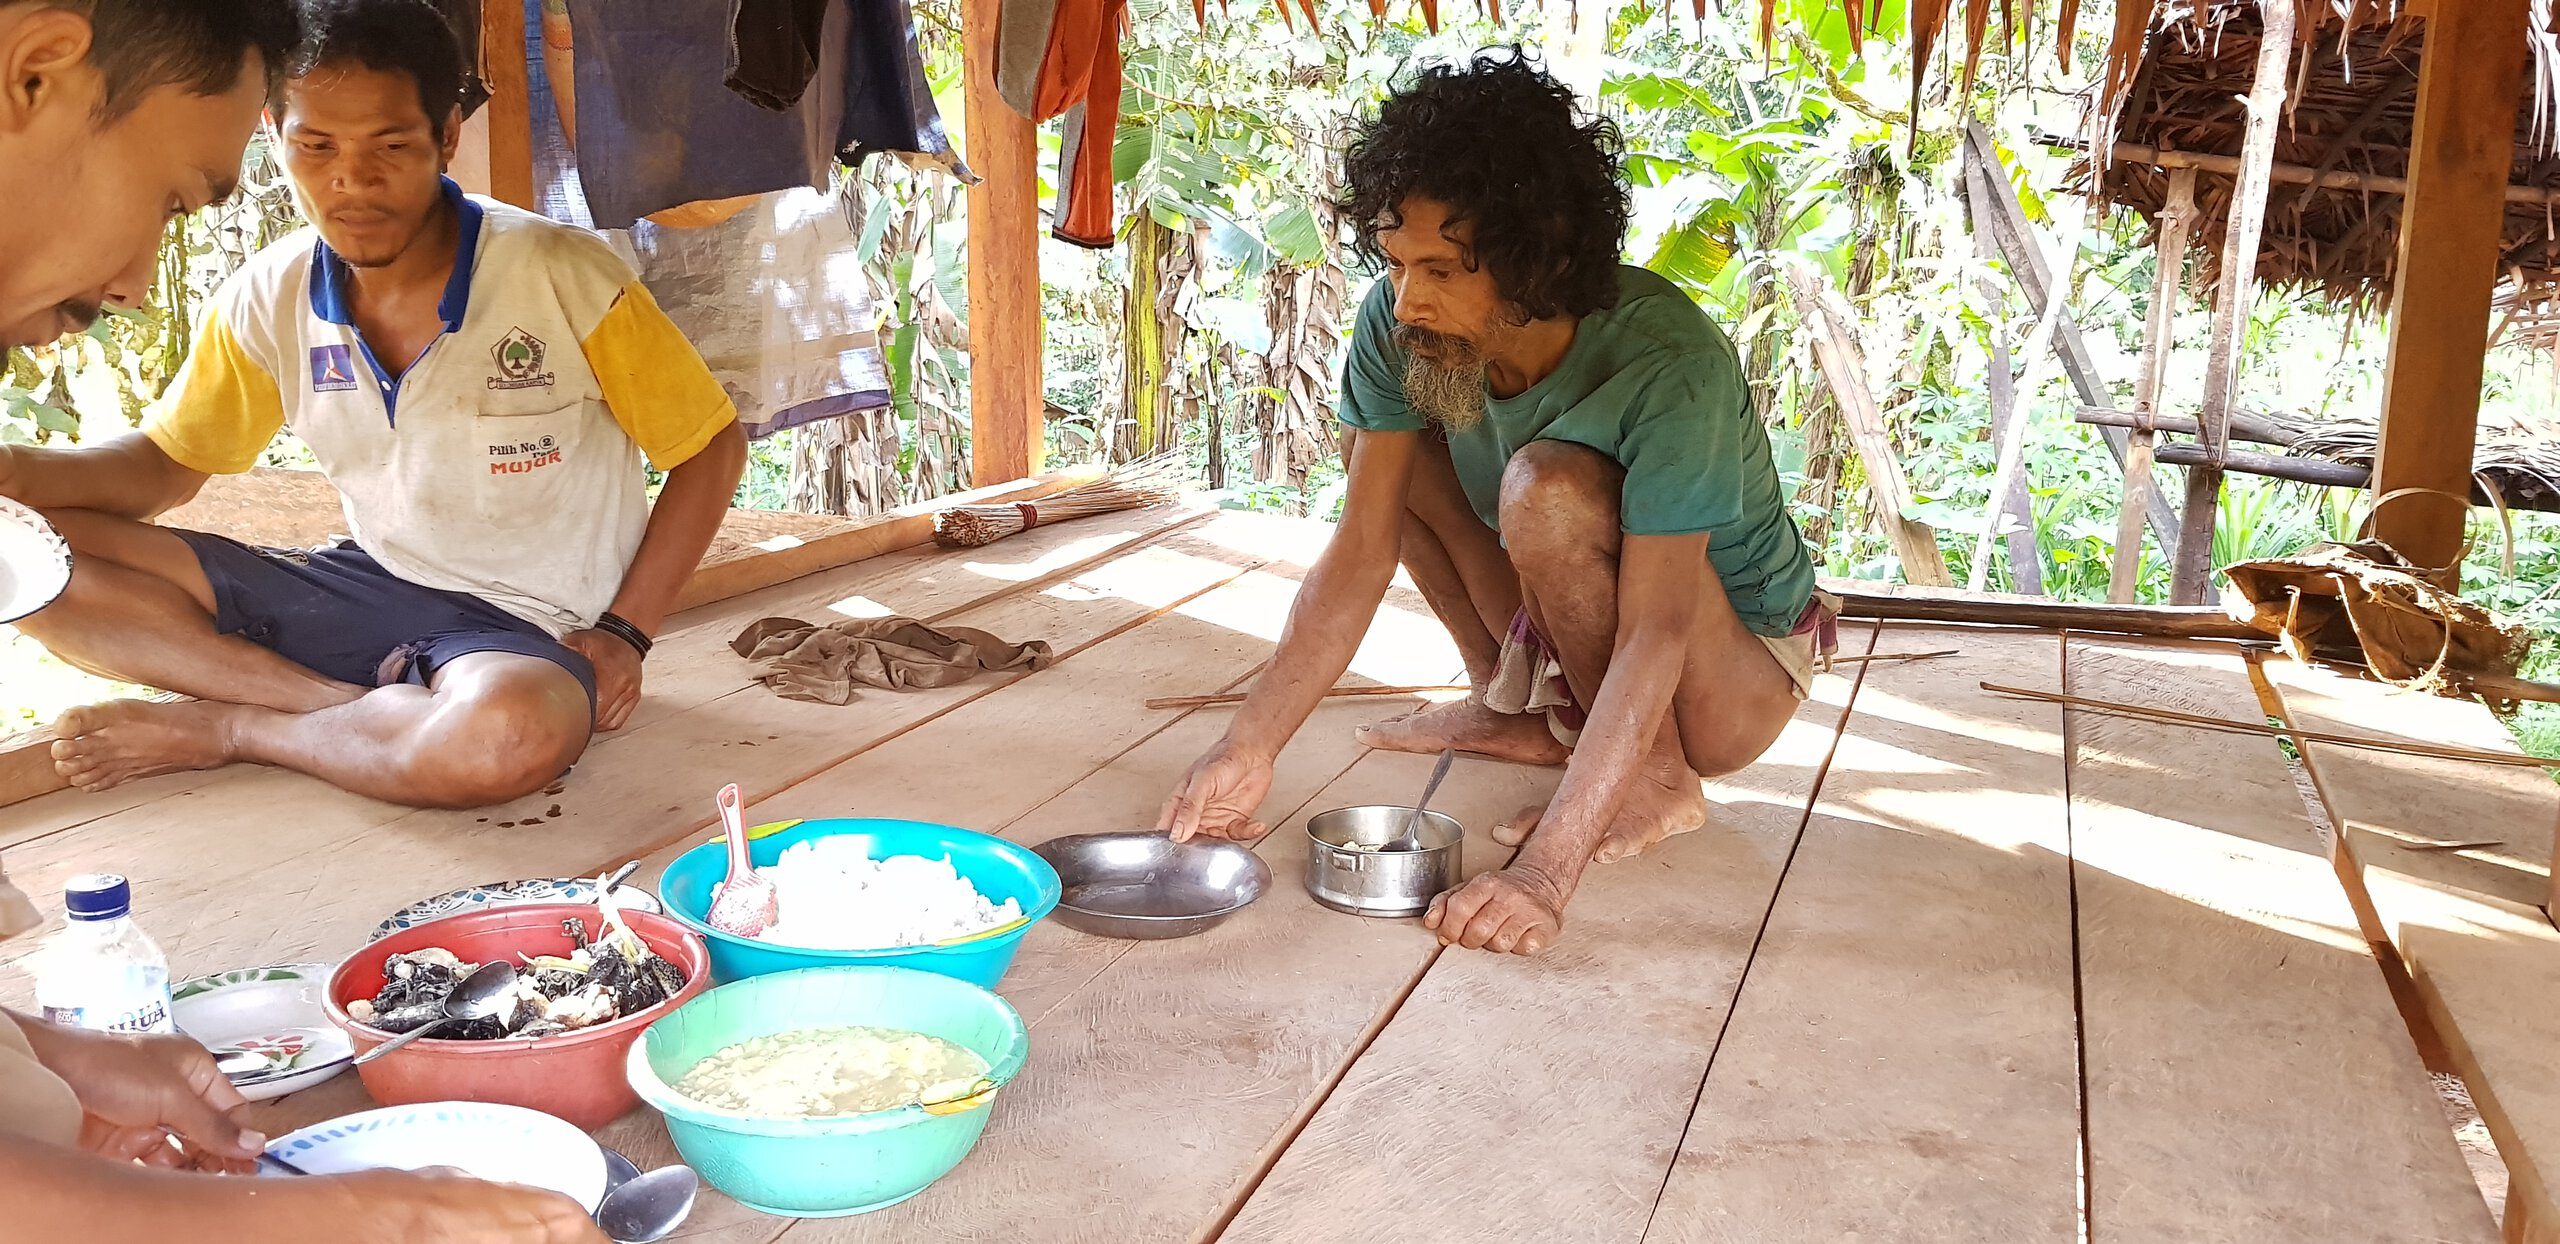 Pak Pojiji, the oldest Togutil in the settlement (right) is having a lunch with his guests. His house was built for him by Antam, a company mining nickel in Halmahera.